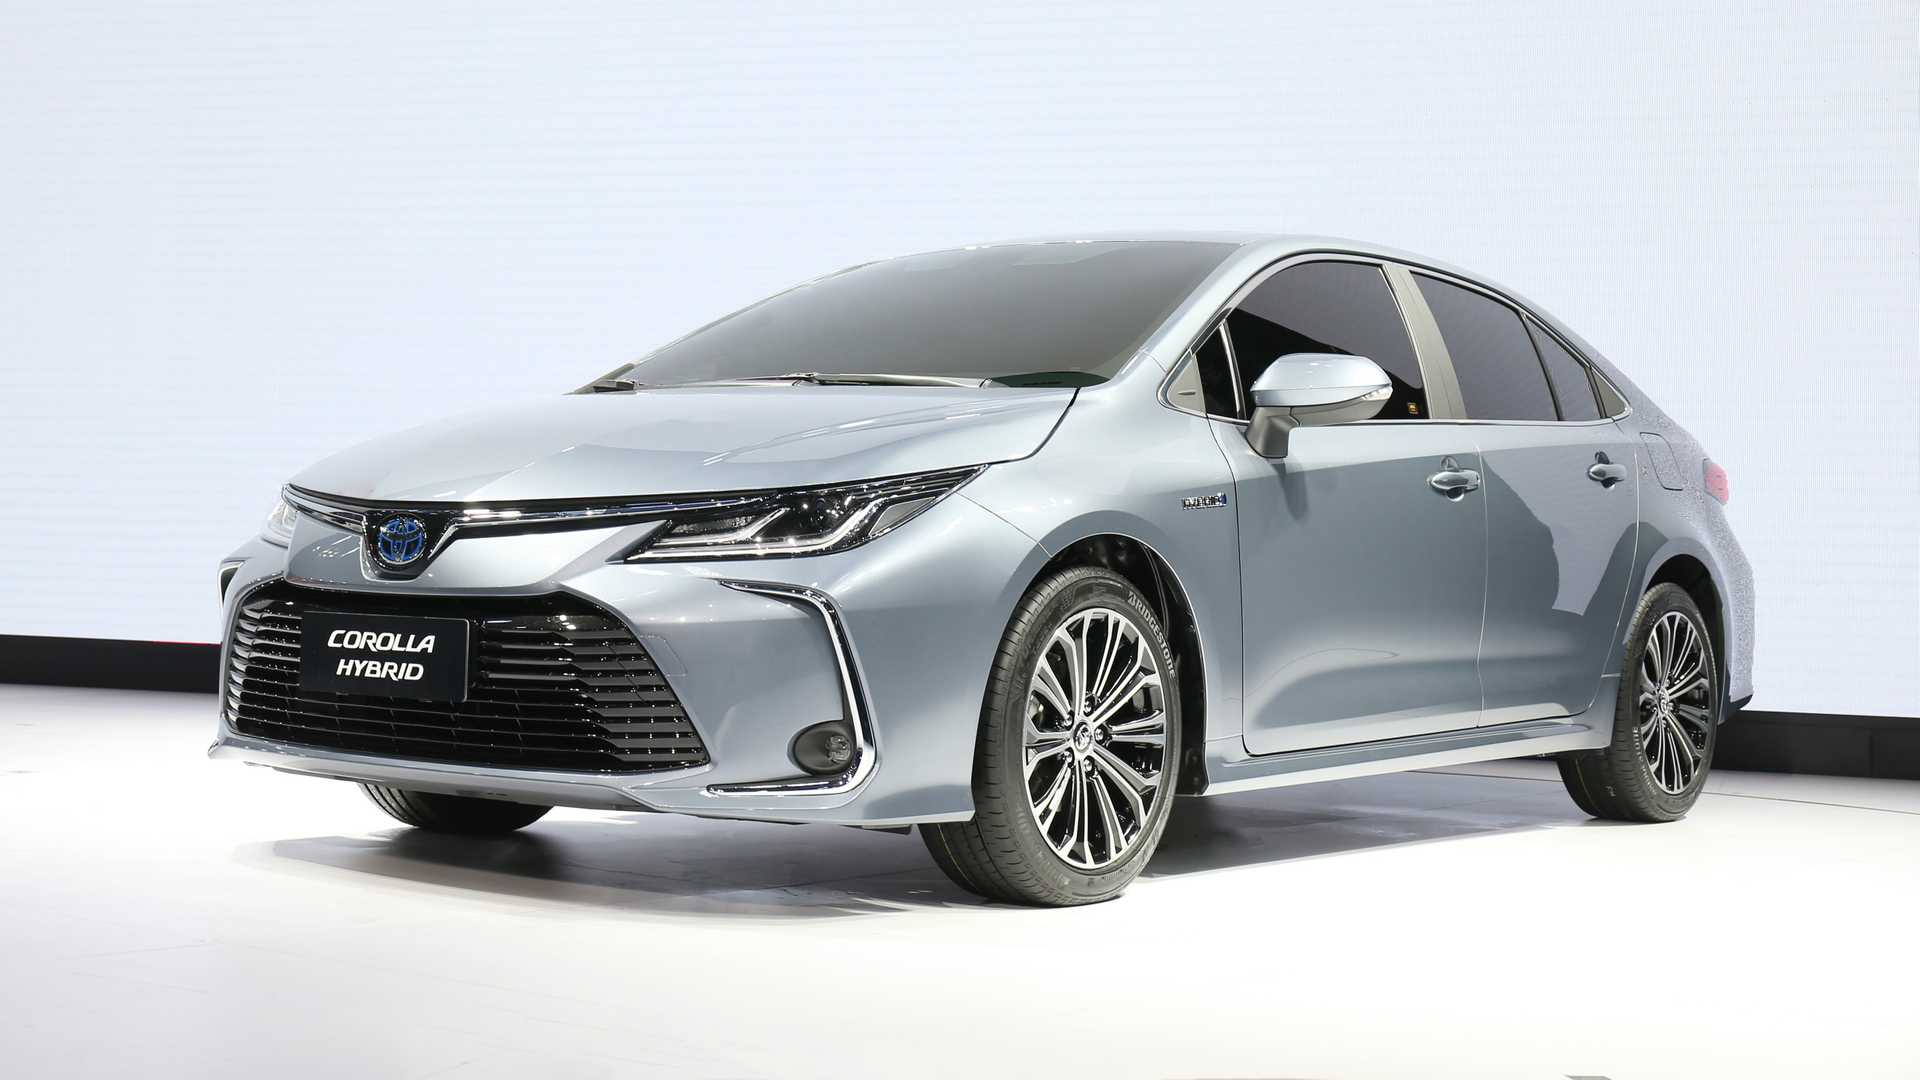 12 All New 2020 Toyota Altis 2018 Redesign with 2020 Toyota Altis 2018